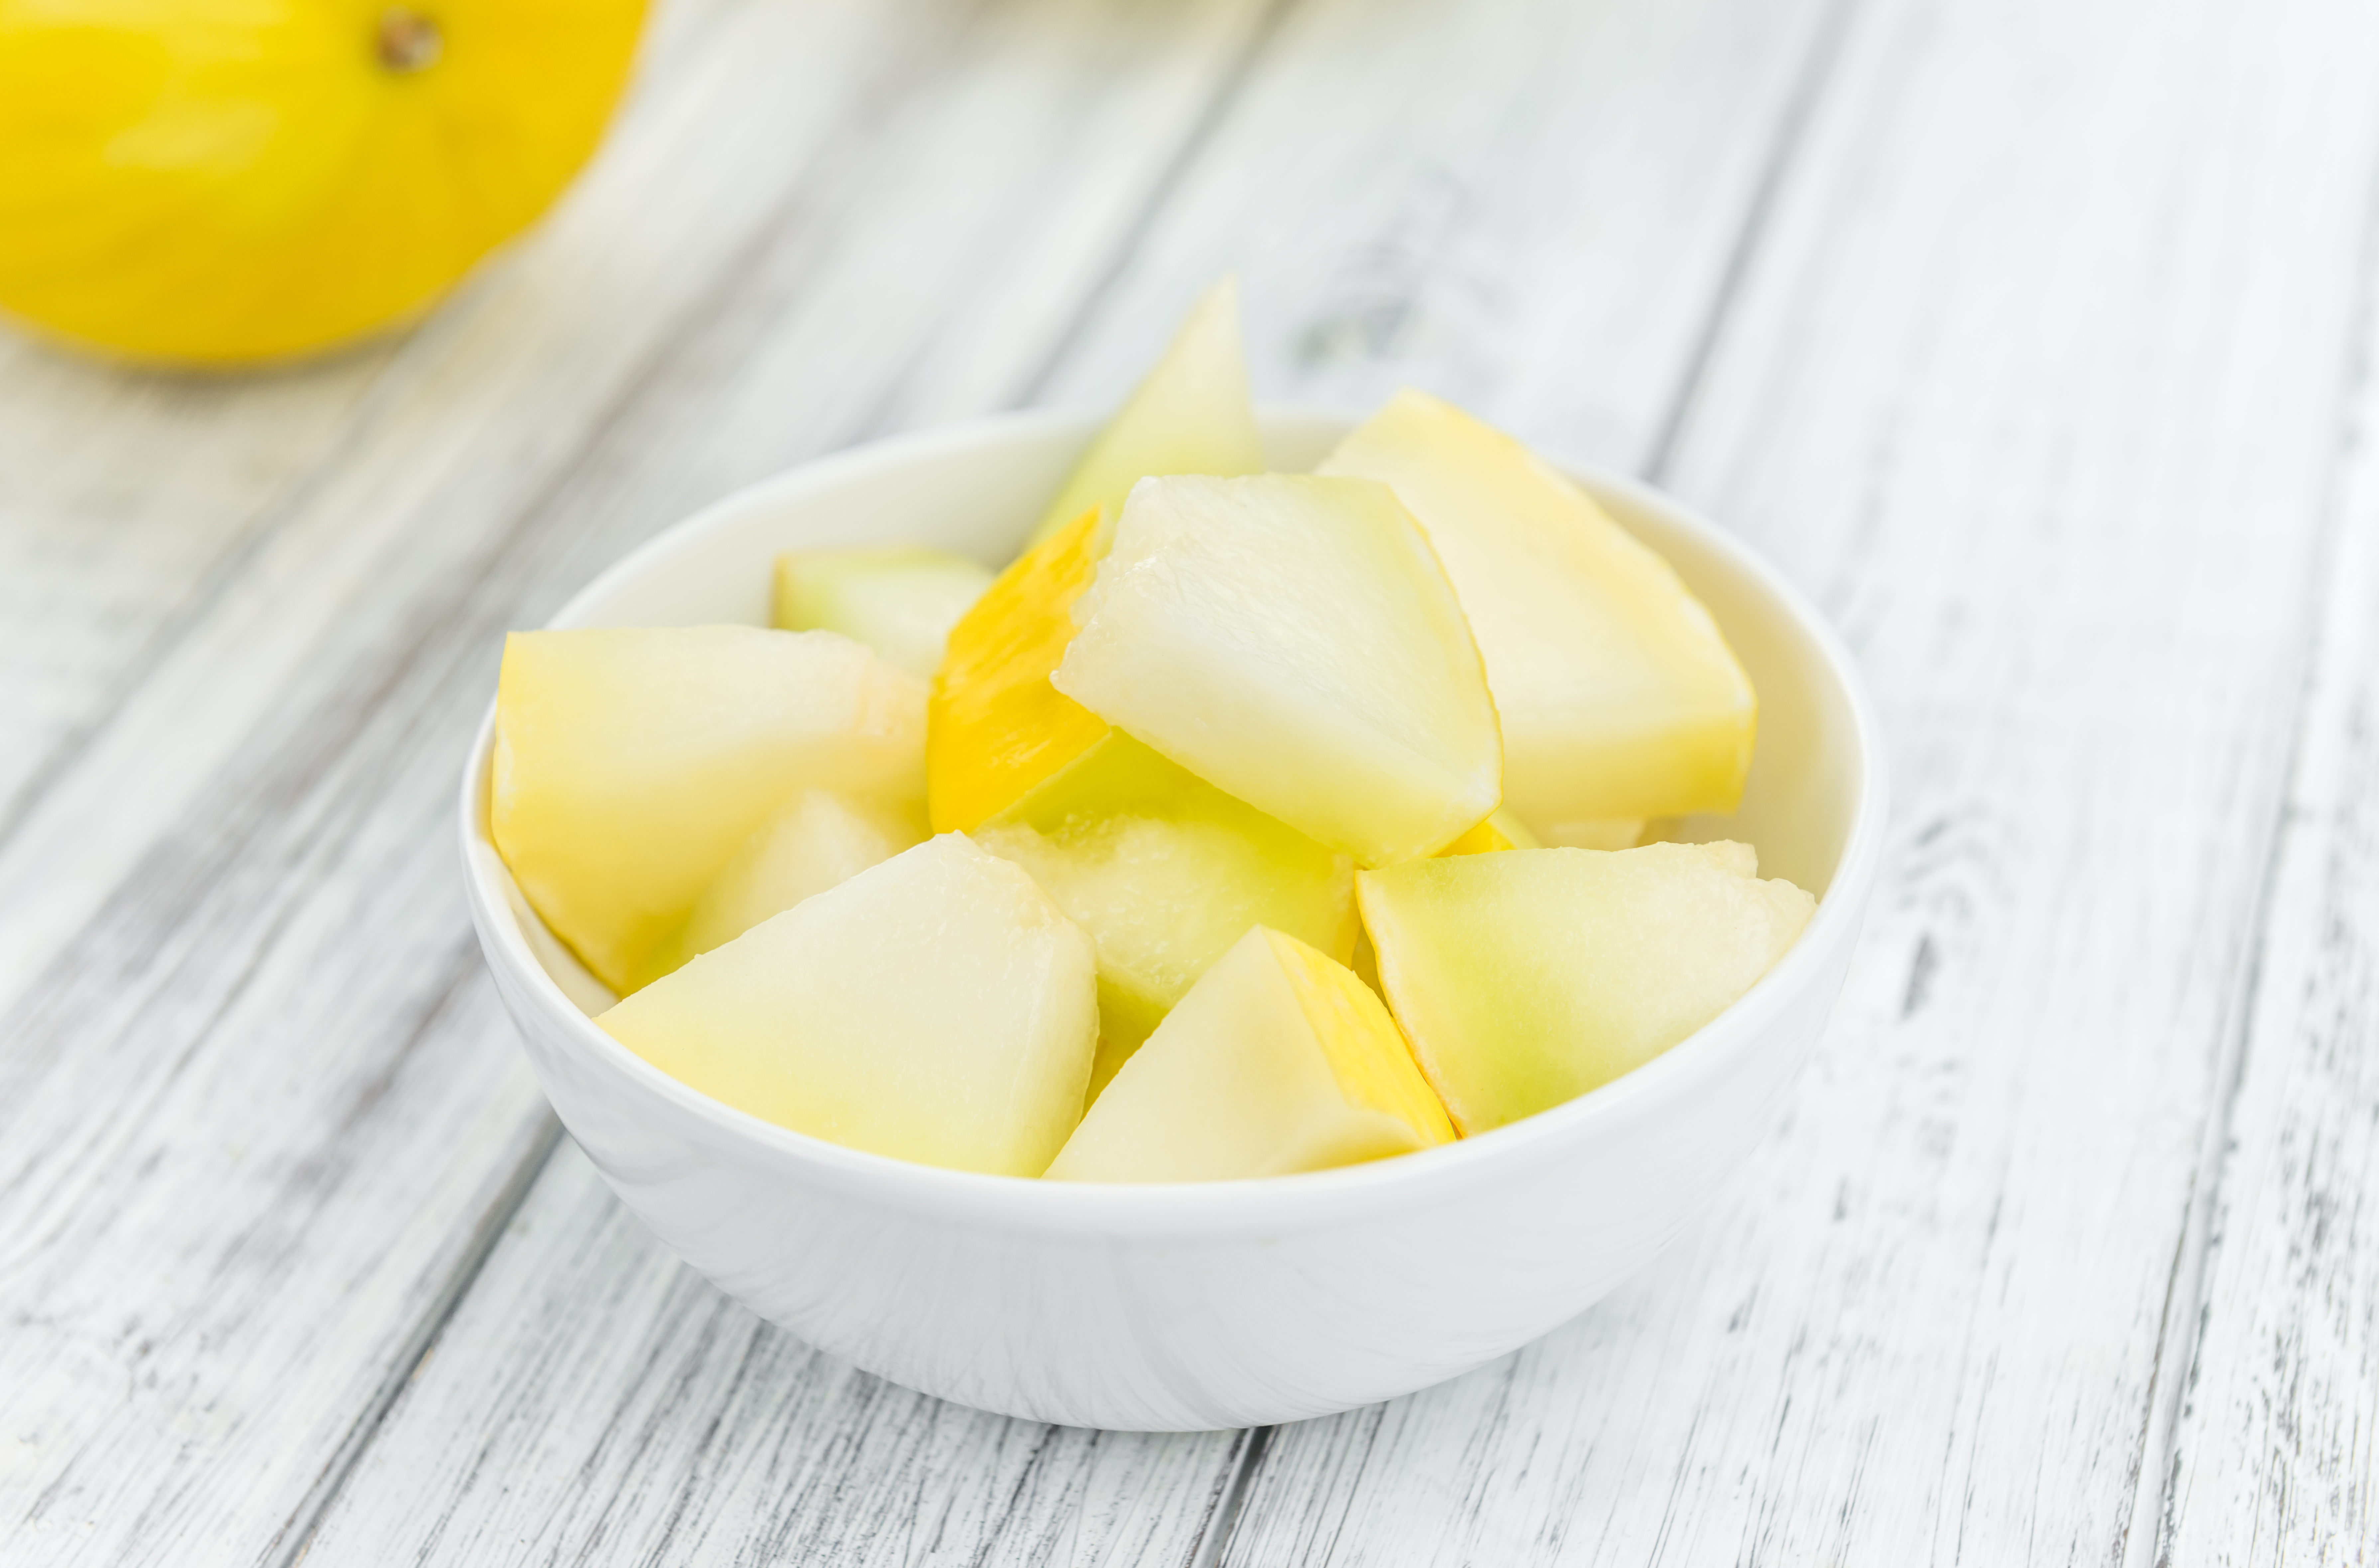 What Are The Health Benefits From Canary Melon The fruit is fresh and able to meet your. https healthyeating sfgate com health benefits canary melon 11576 html